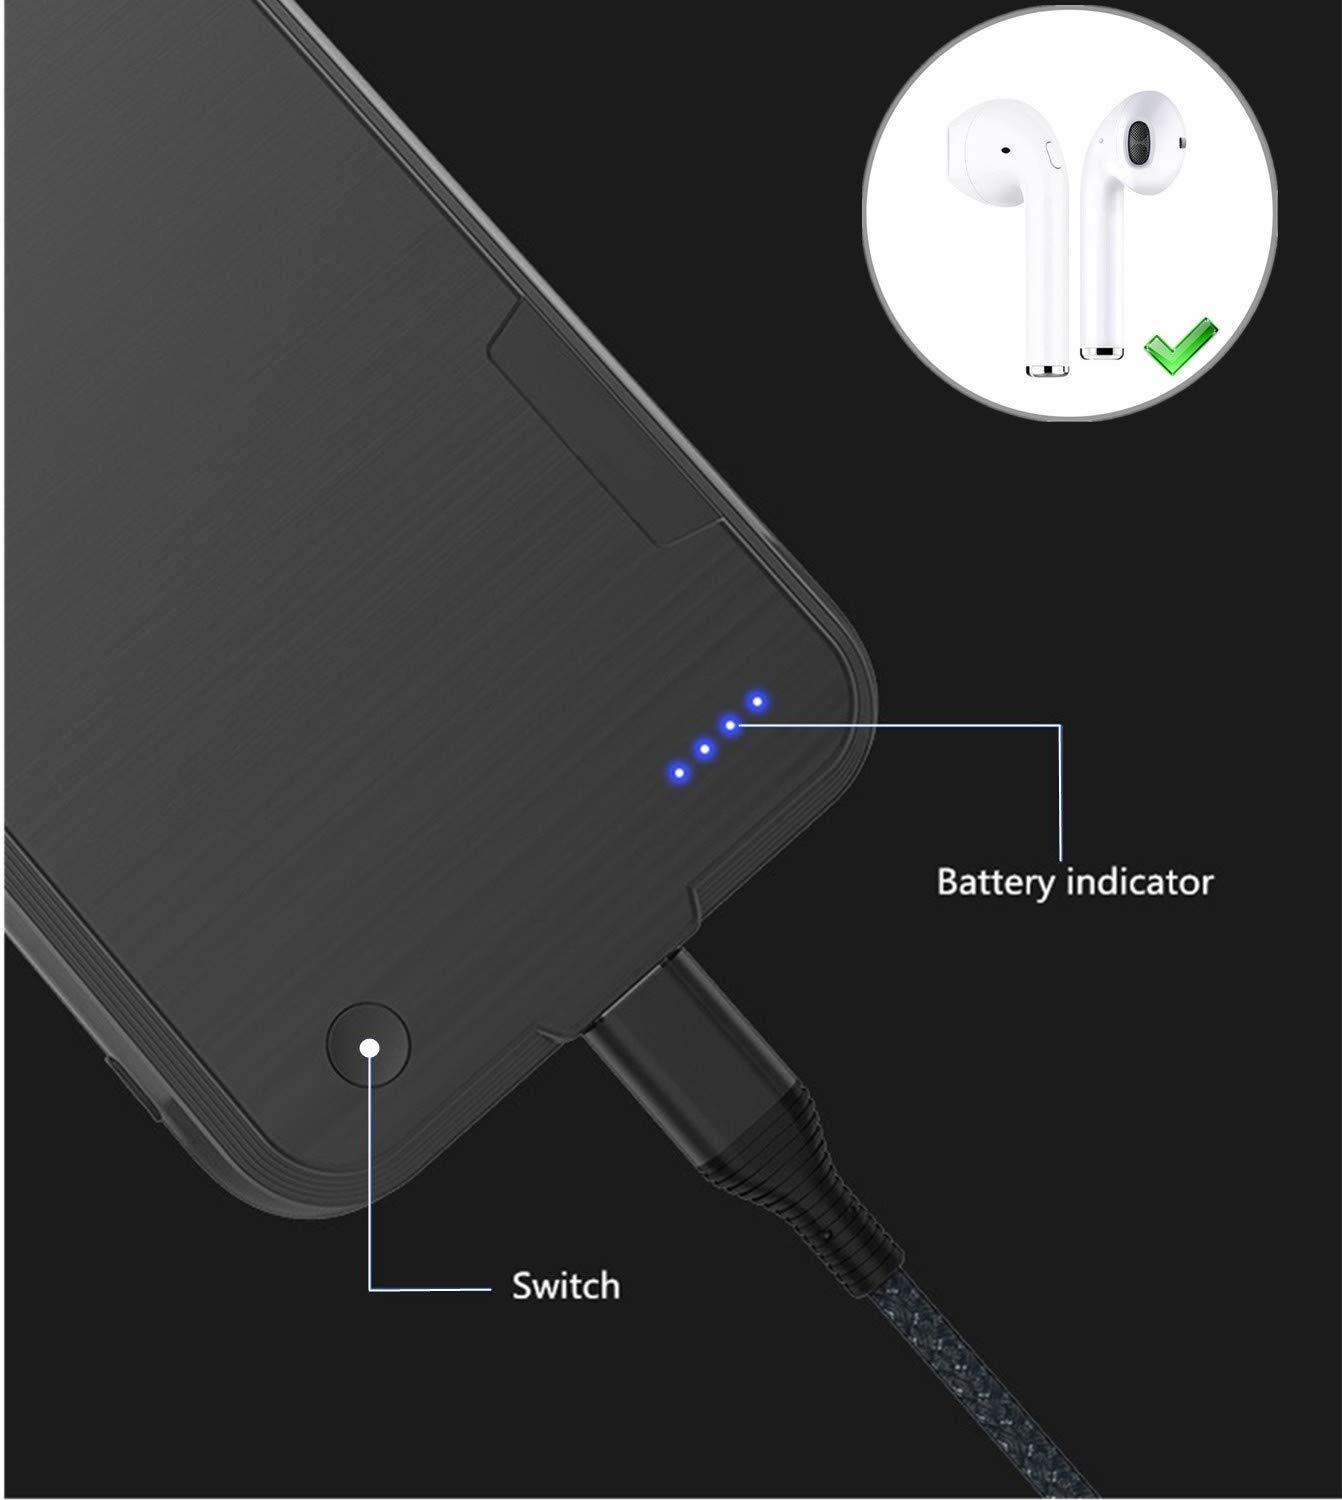 Paditech 4000mah Akku Hlle Fr Iphone X Elektronik Flat Battery Indicator